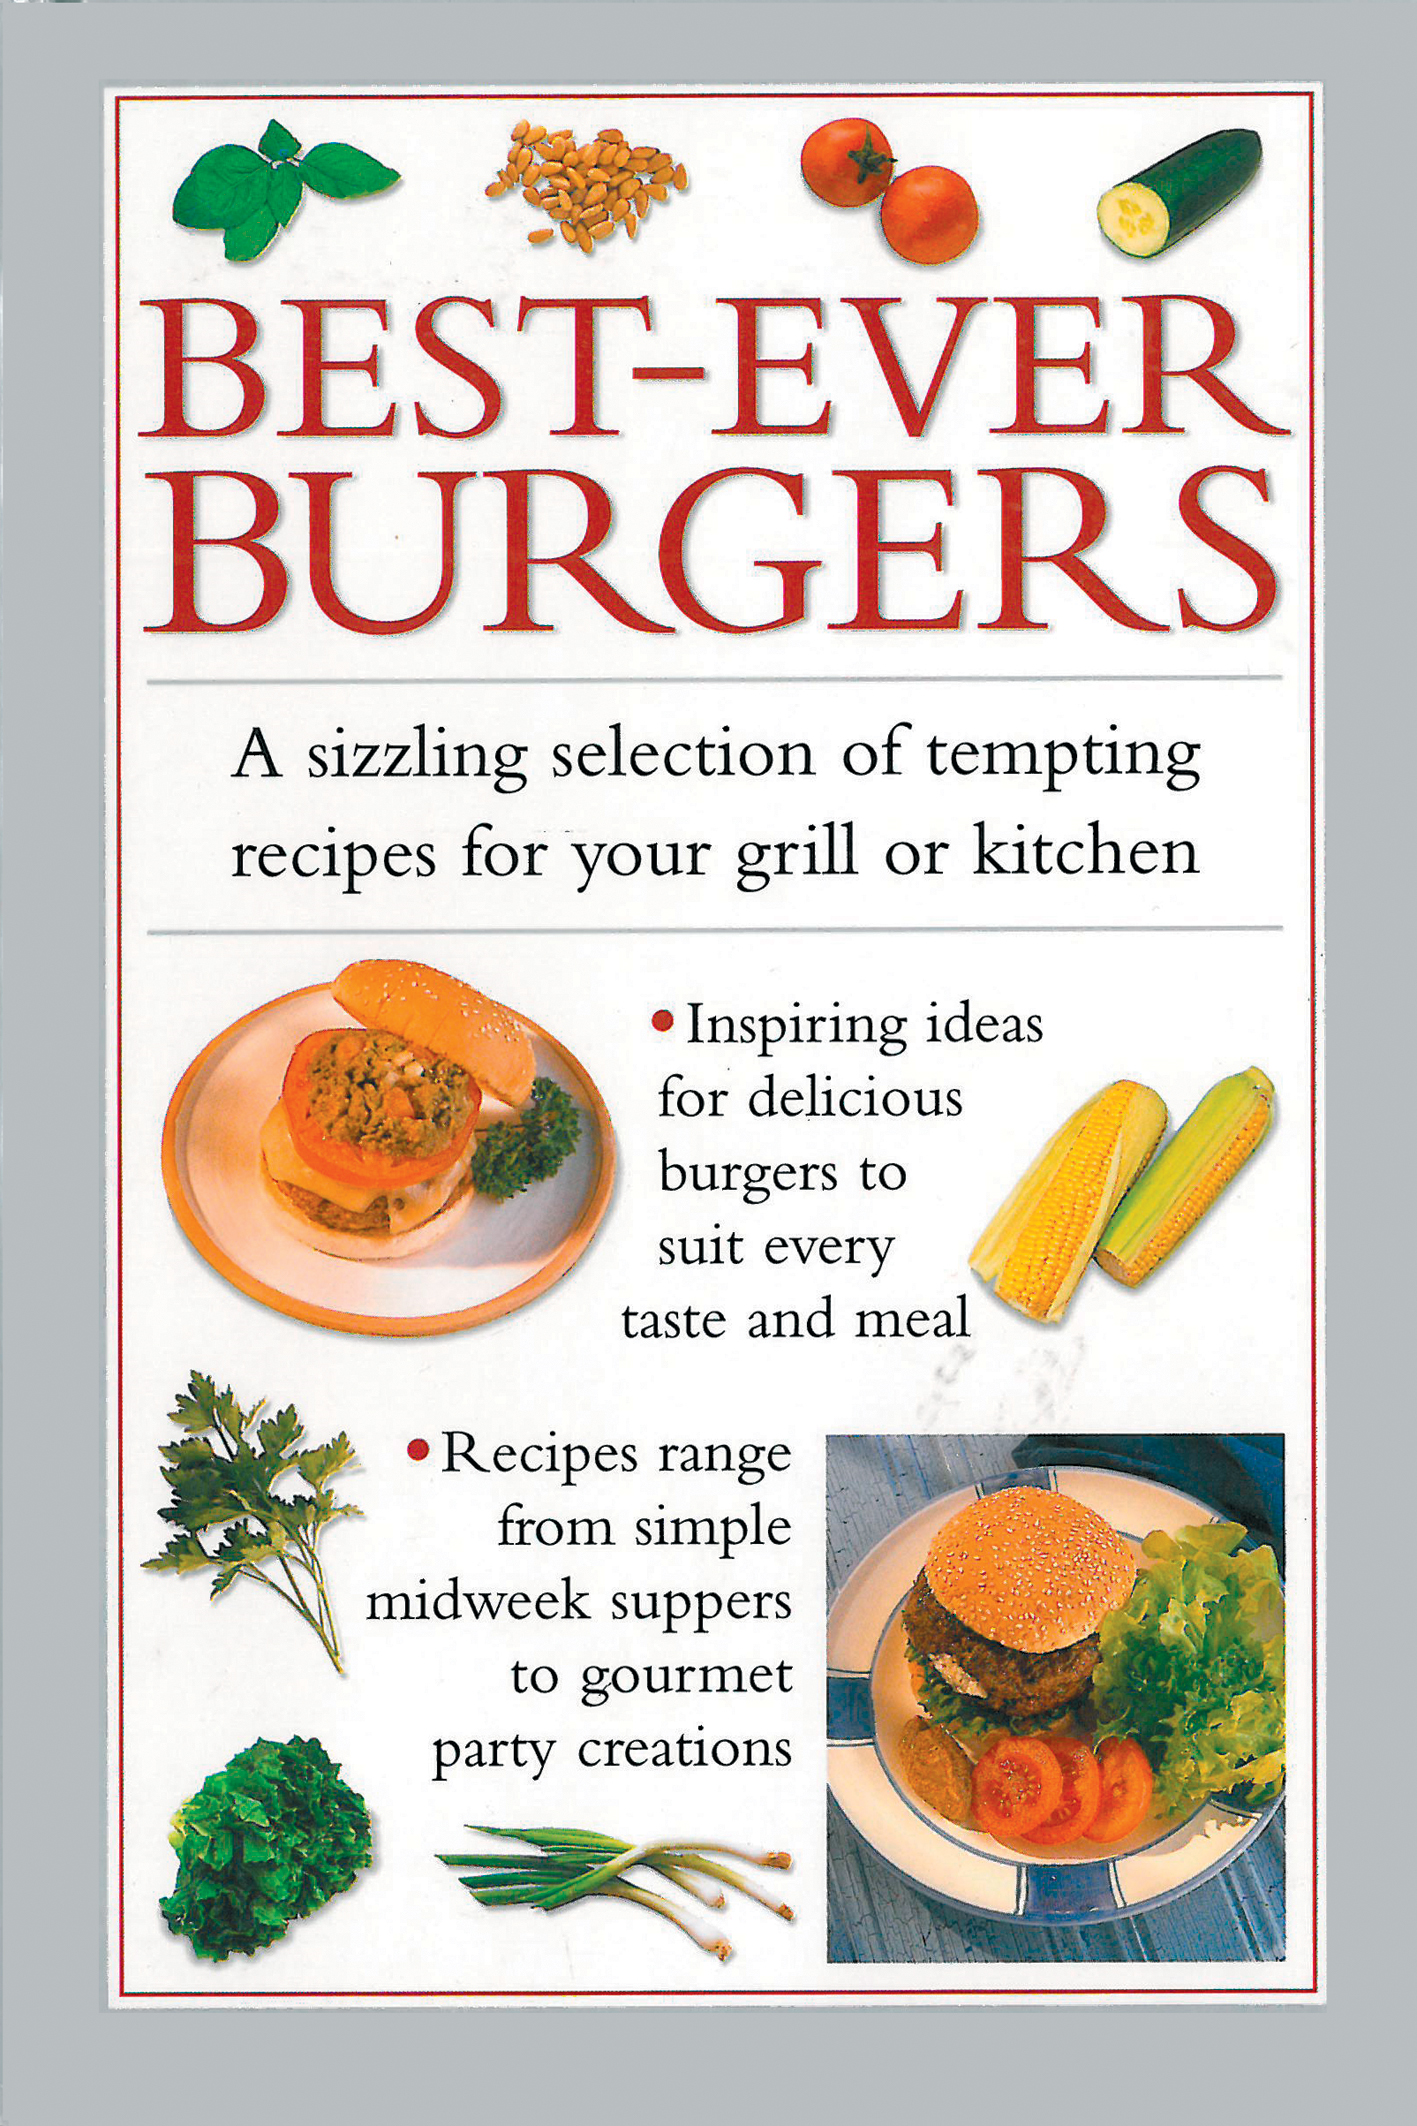 Best-Ever Burgers A Sizzling Selection of Tempting Recipes for your Grill or Kitchen